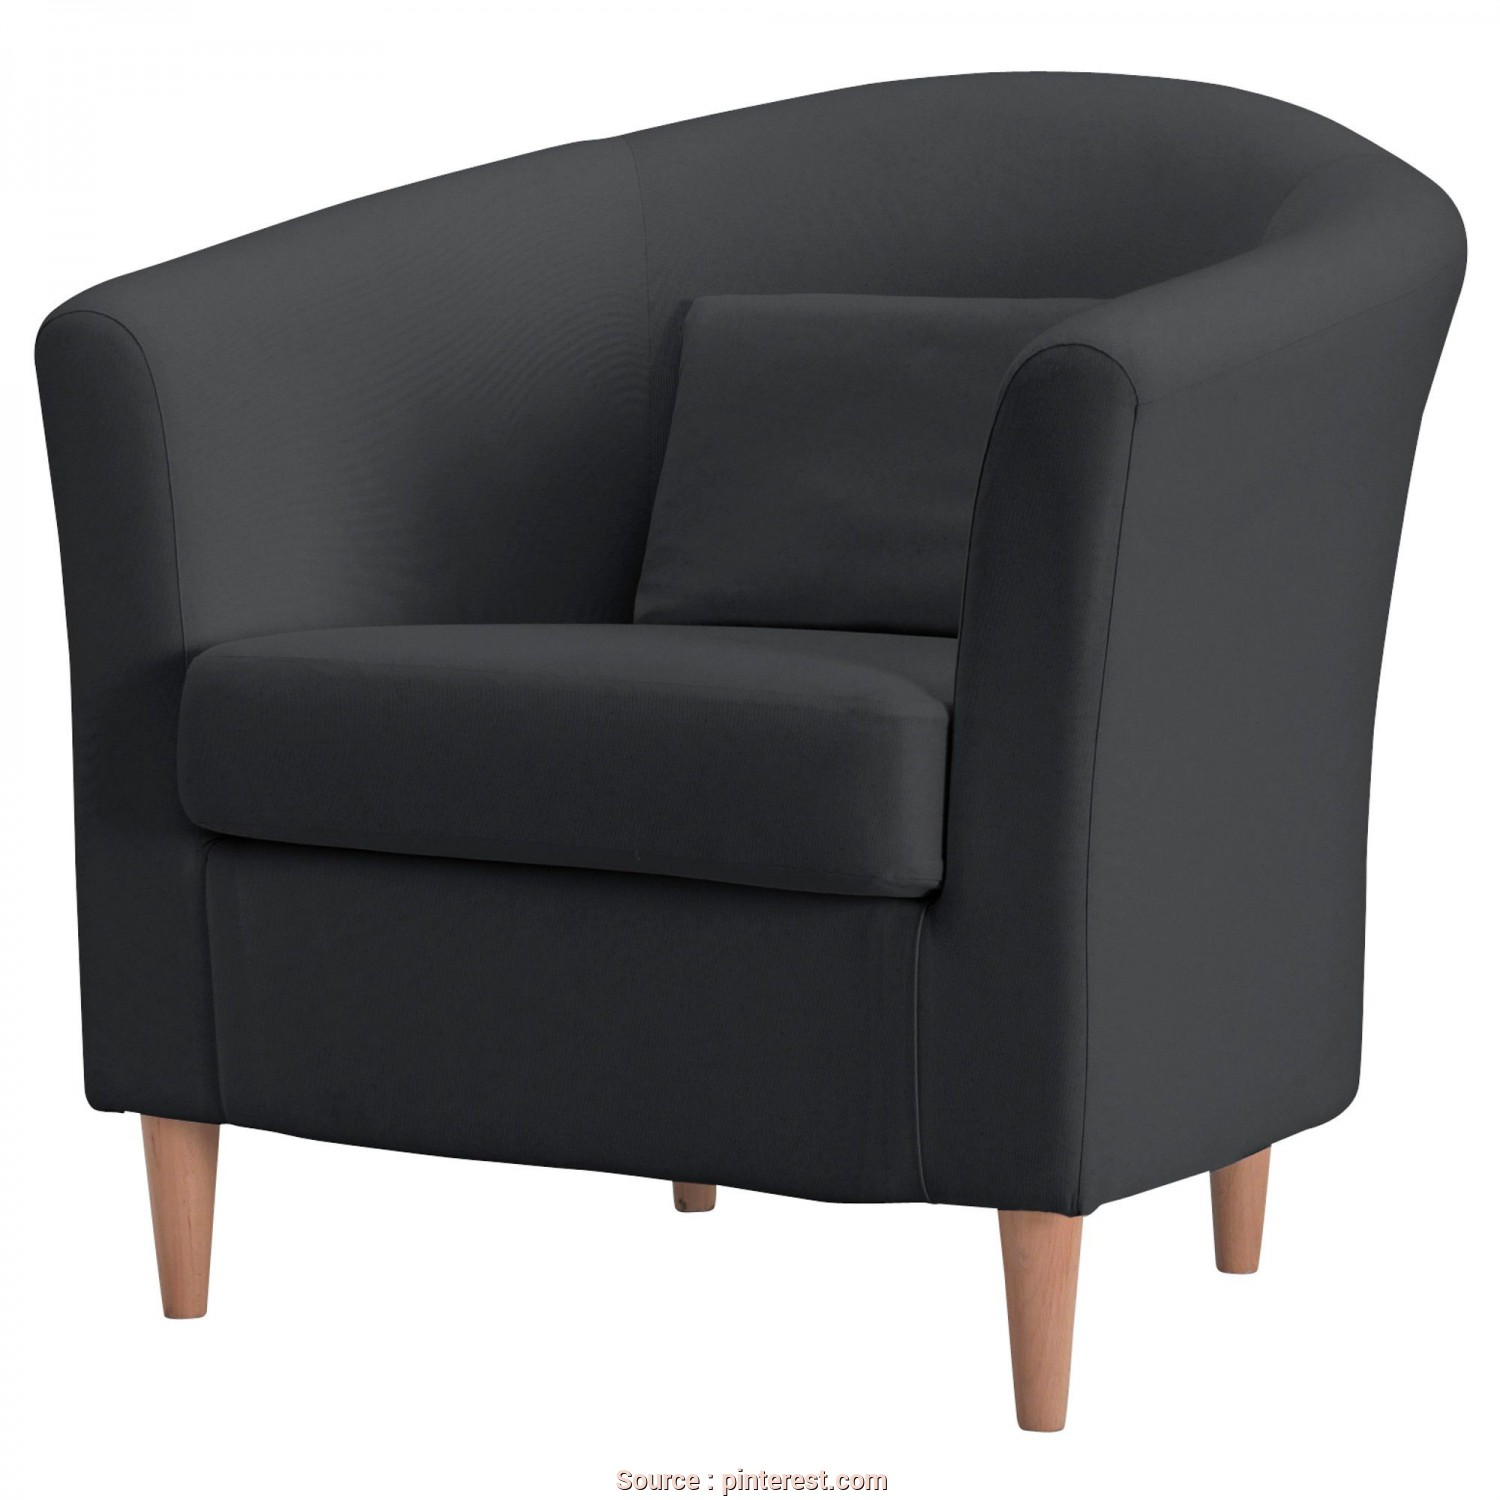 Poltrona Ikea Tullsta, Casuale TULLSTA Chair, Ransta Dark Gray, IKEA $99- Another Option, Probably Easier, Little, To, It,, Naturally, My Ikea Doesn